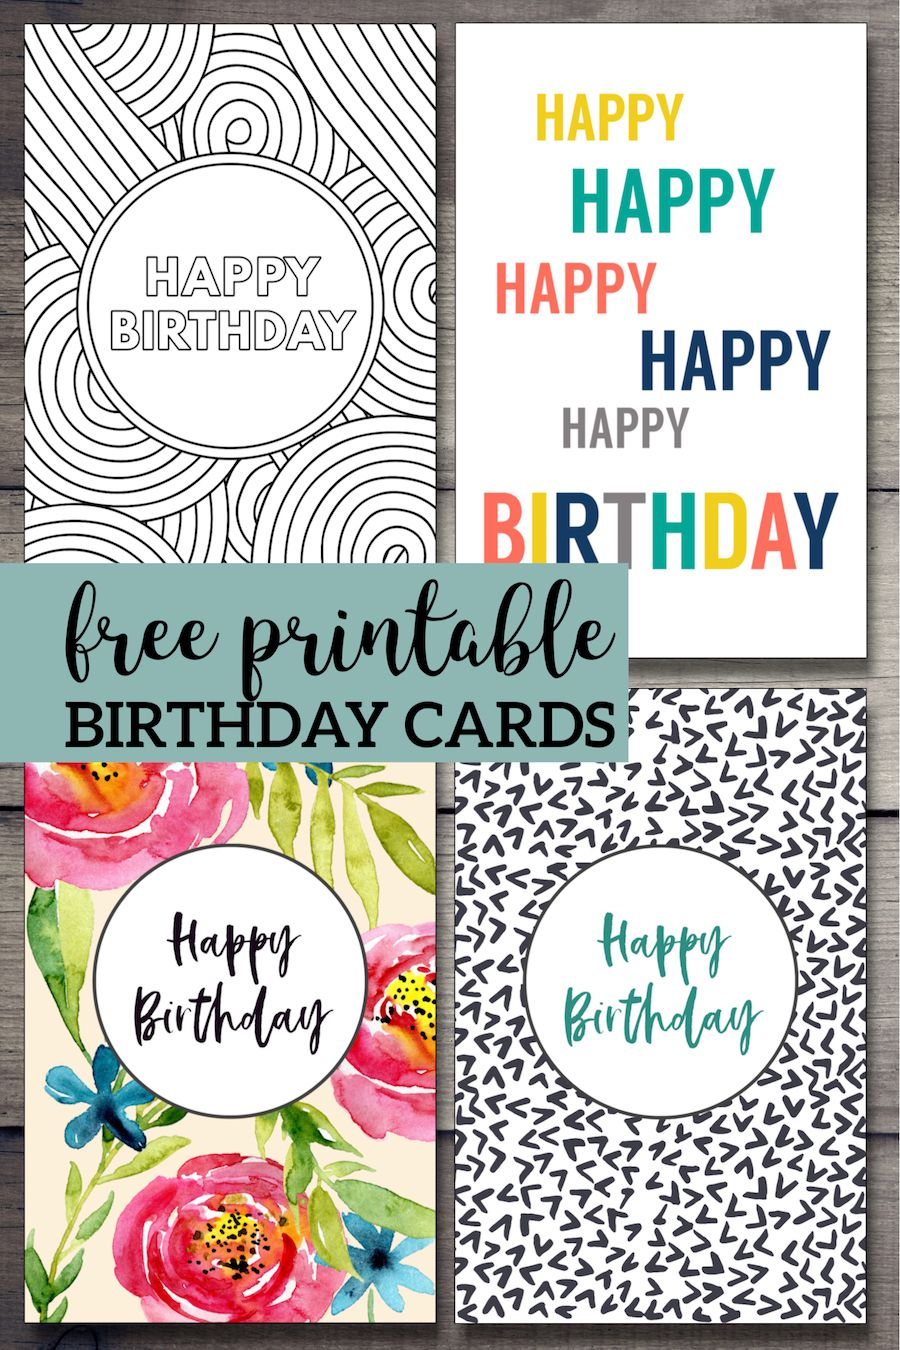 Free Printable Birthday Cards Paper Trail Design Free Printable Birthday Cards Happy Birthday Cards Printable Birthday Cards To Print